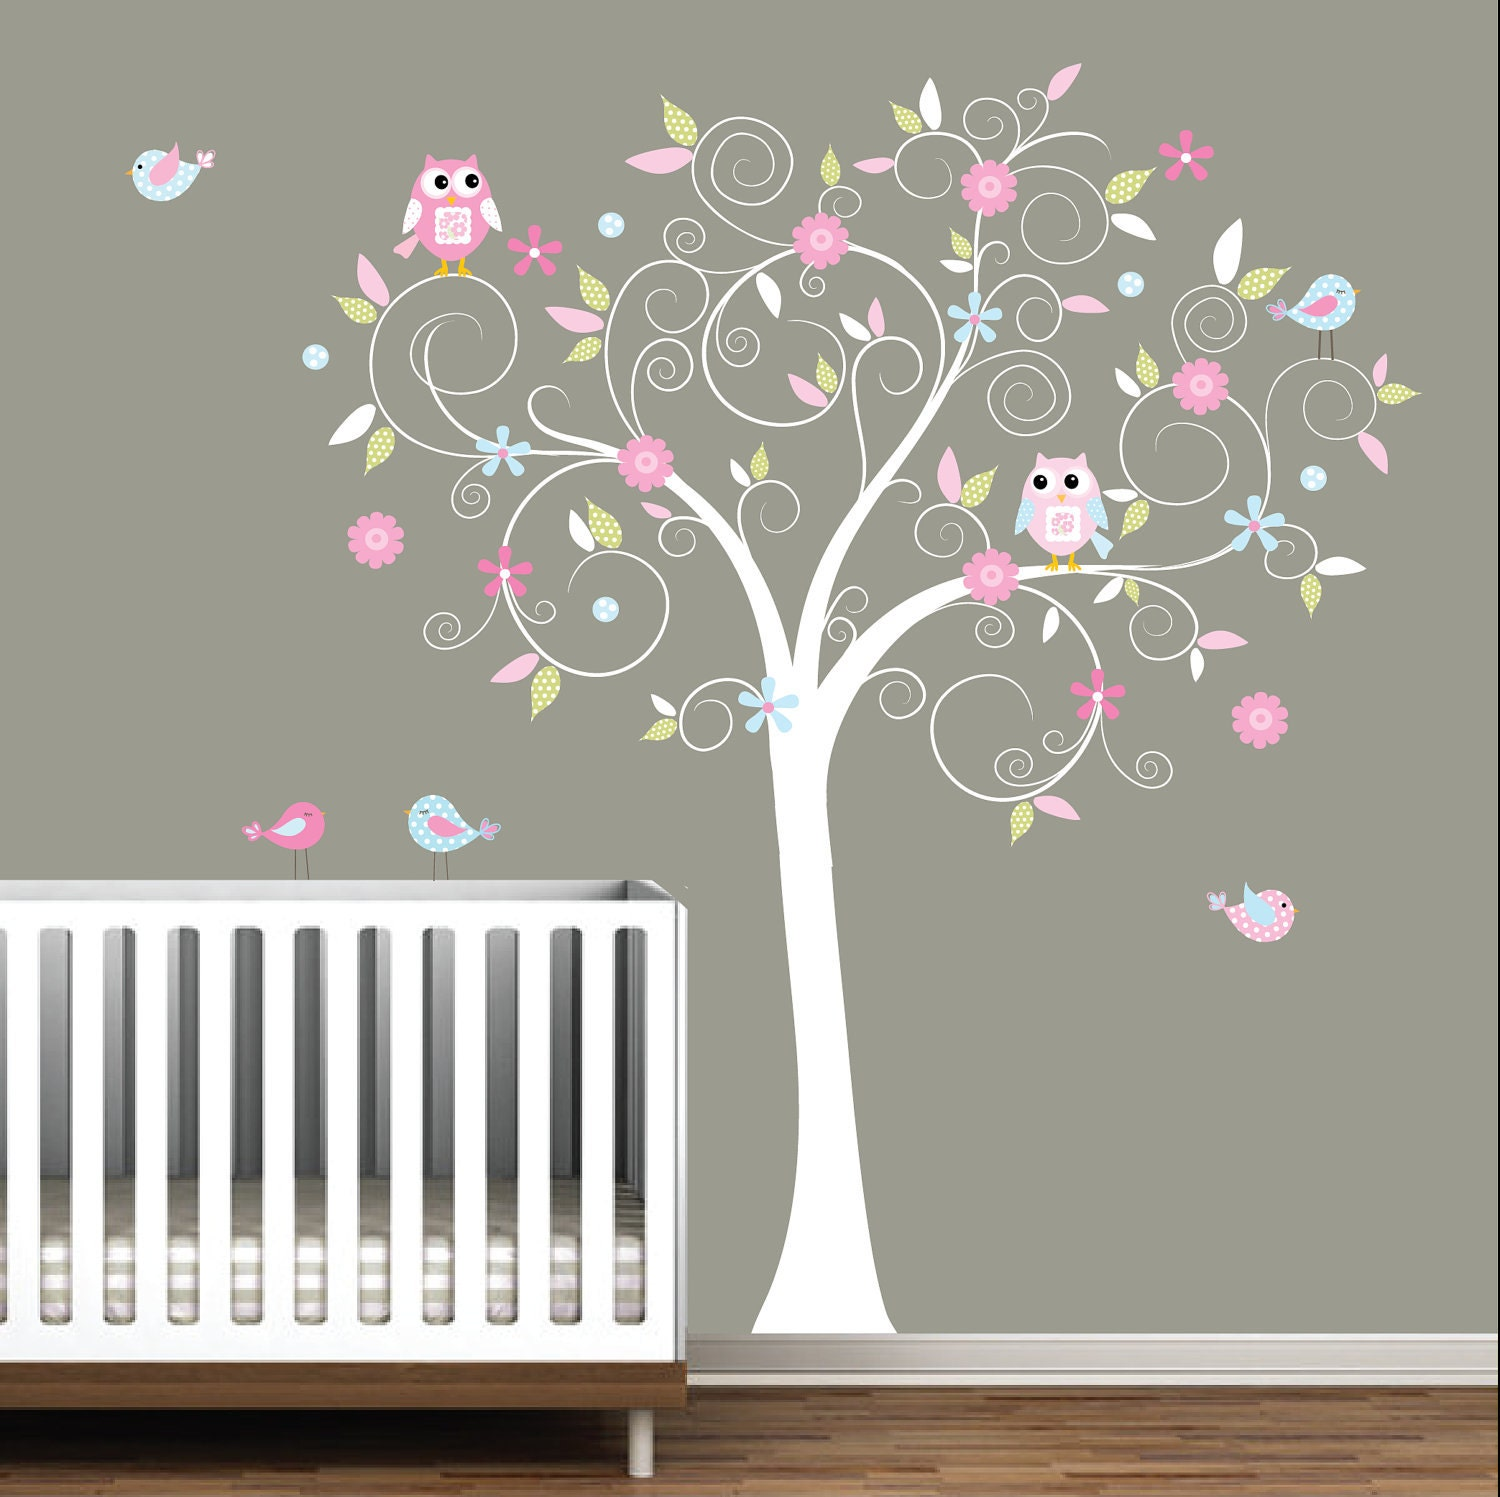 Decal stickers vinyl wall decals nursery tree e17 - Stickers arbre chambre fille ...